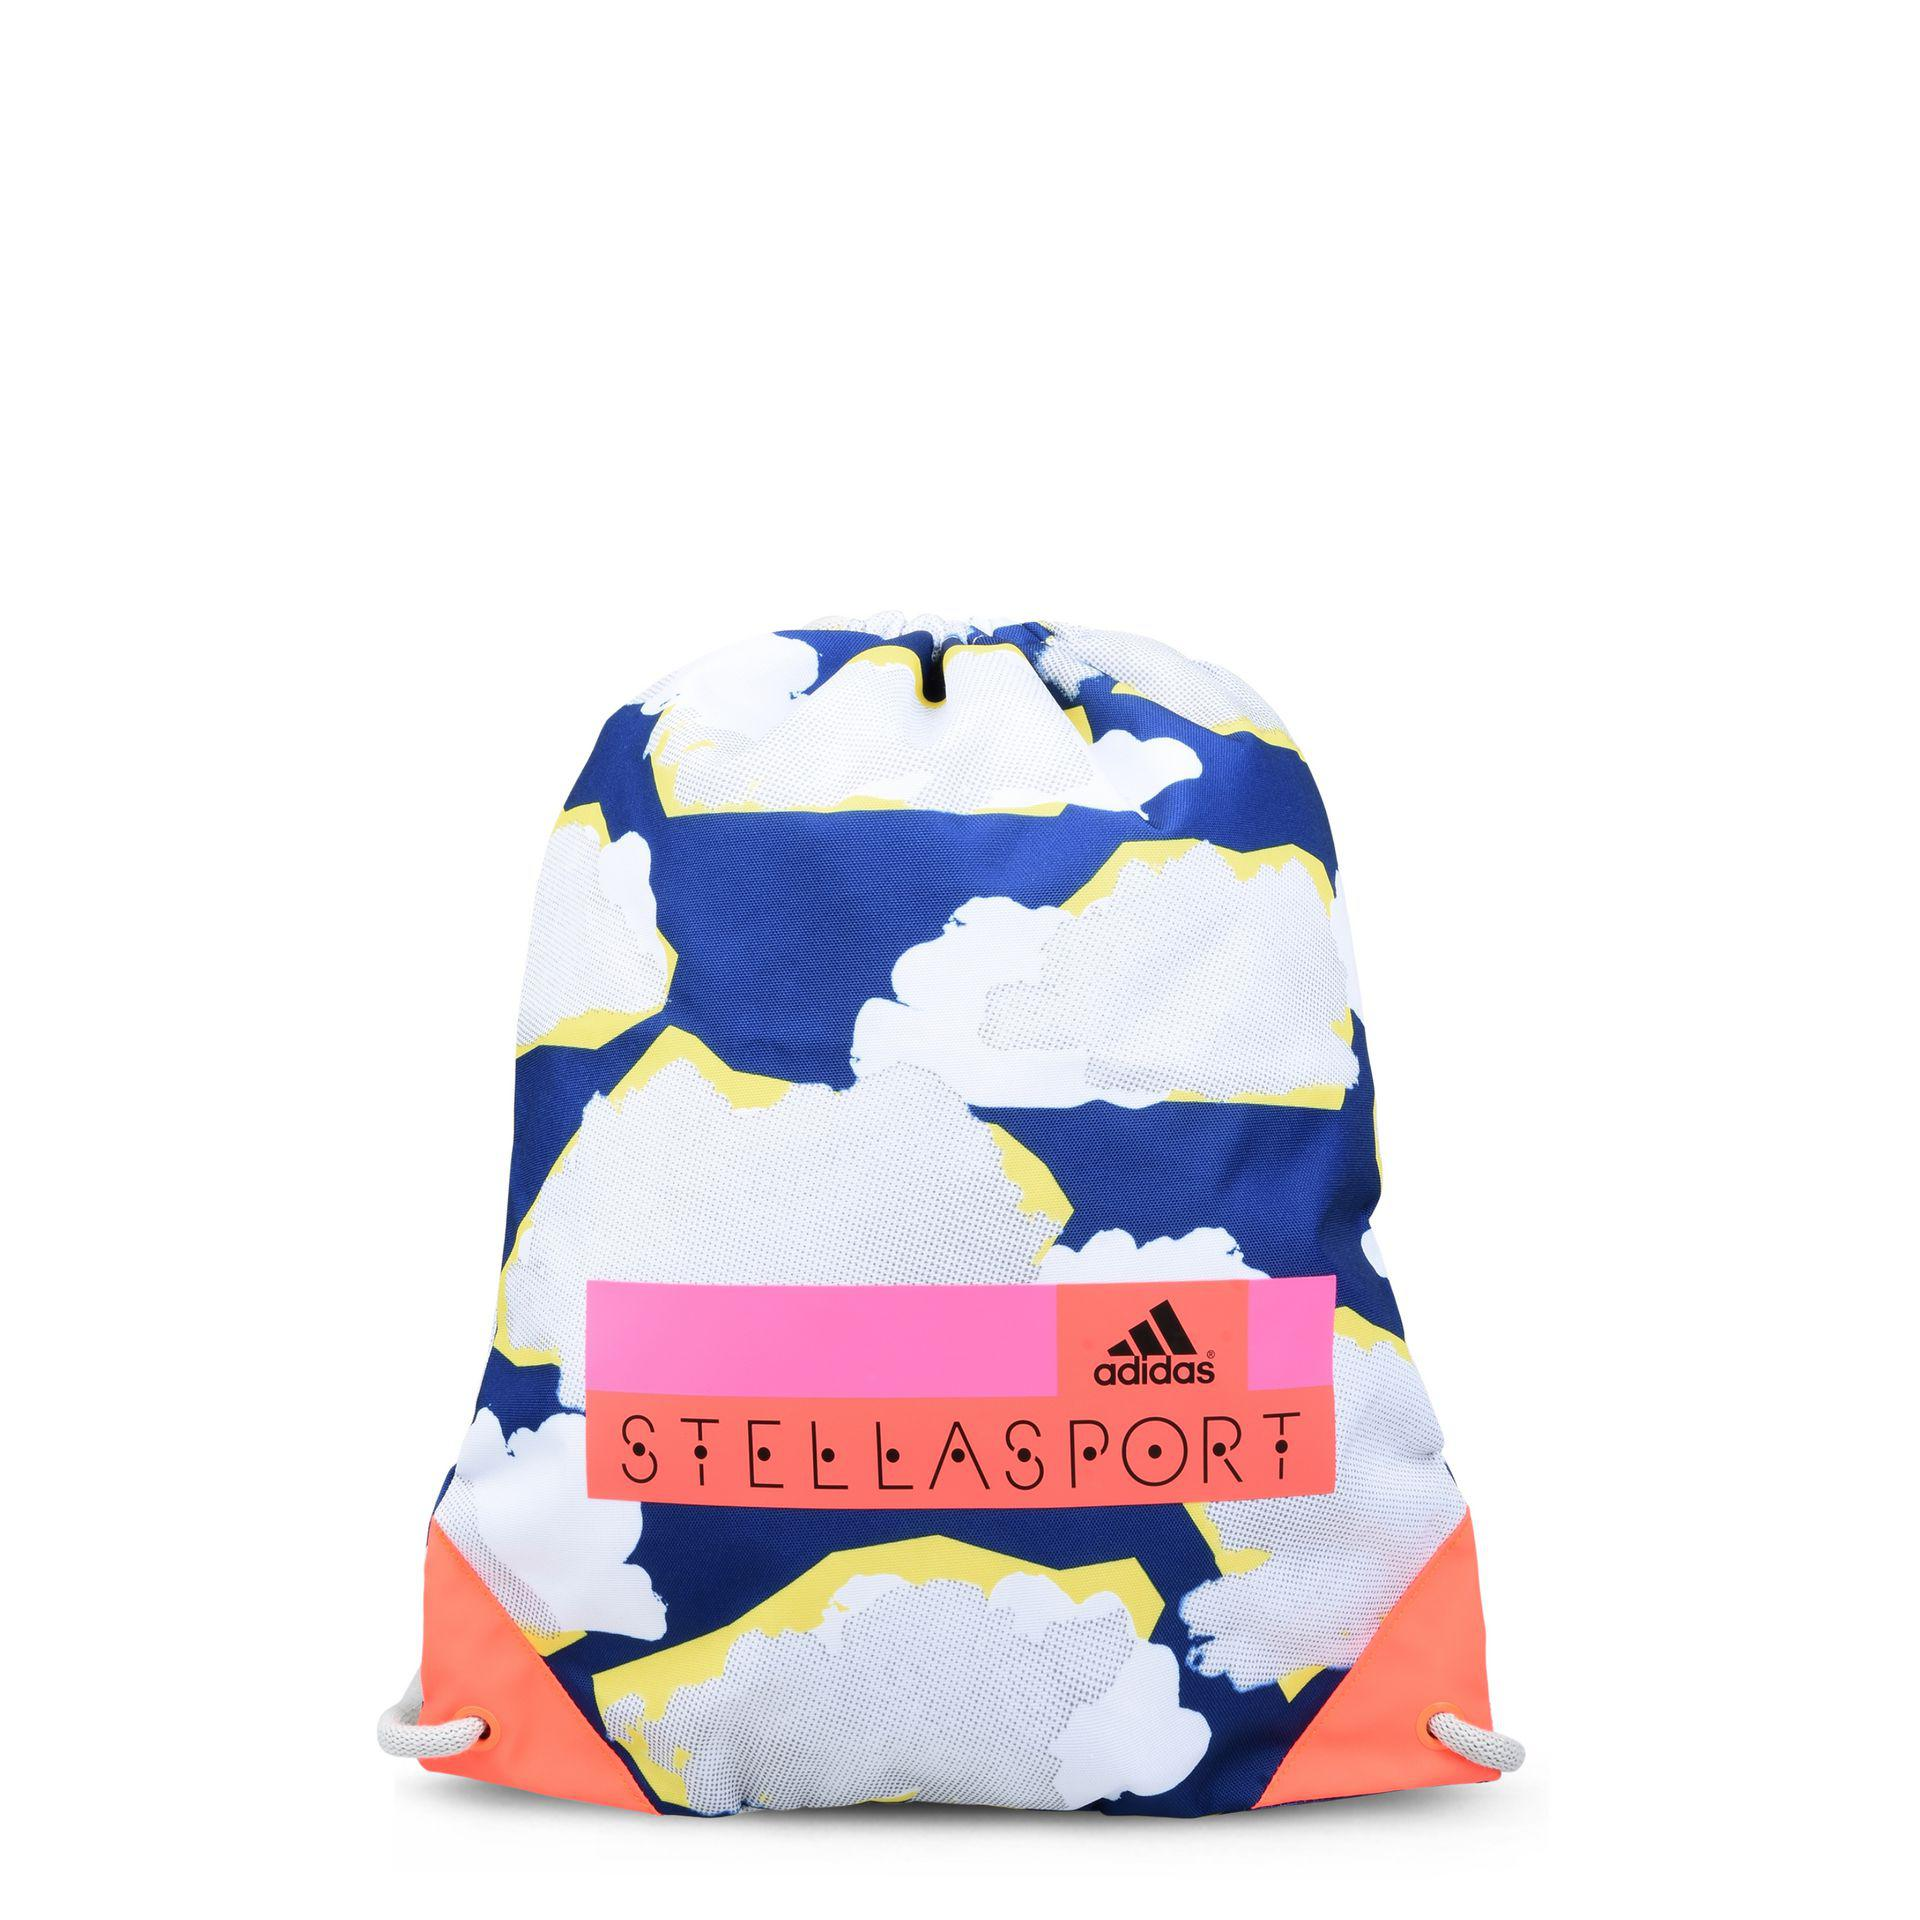 Lyst - adidas By Stella McCartney Cloud Print Gym Bag in Blue 467e3f7fdeb93